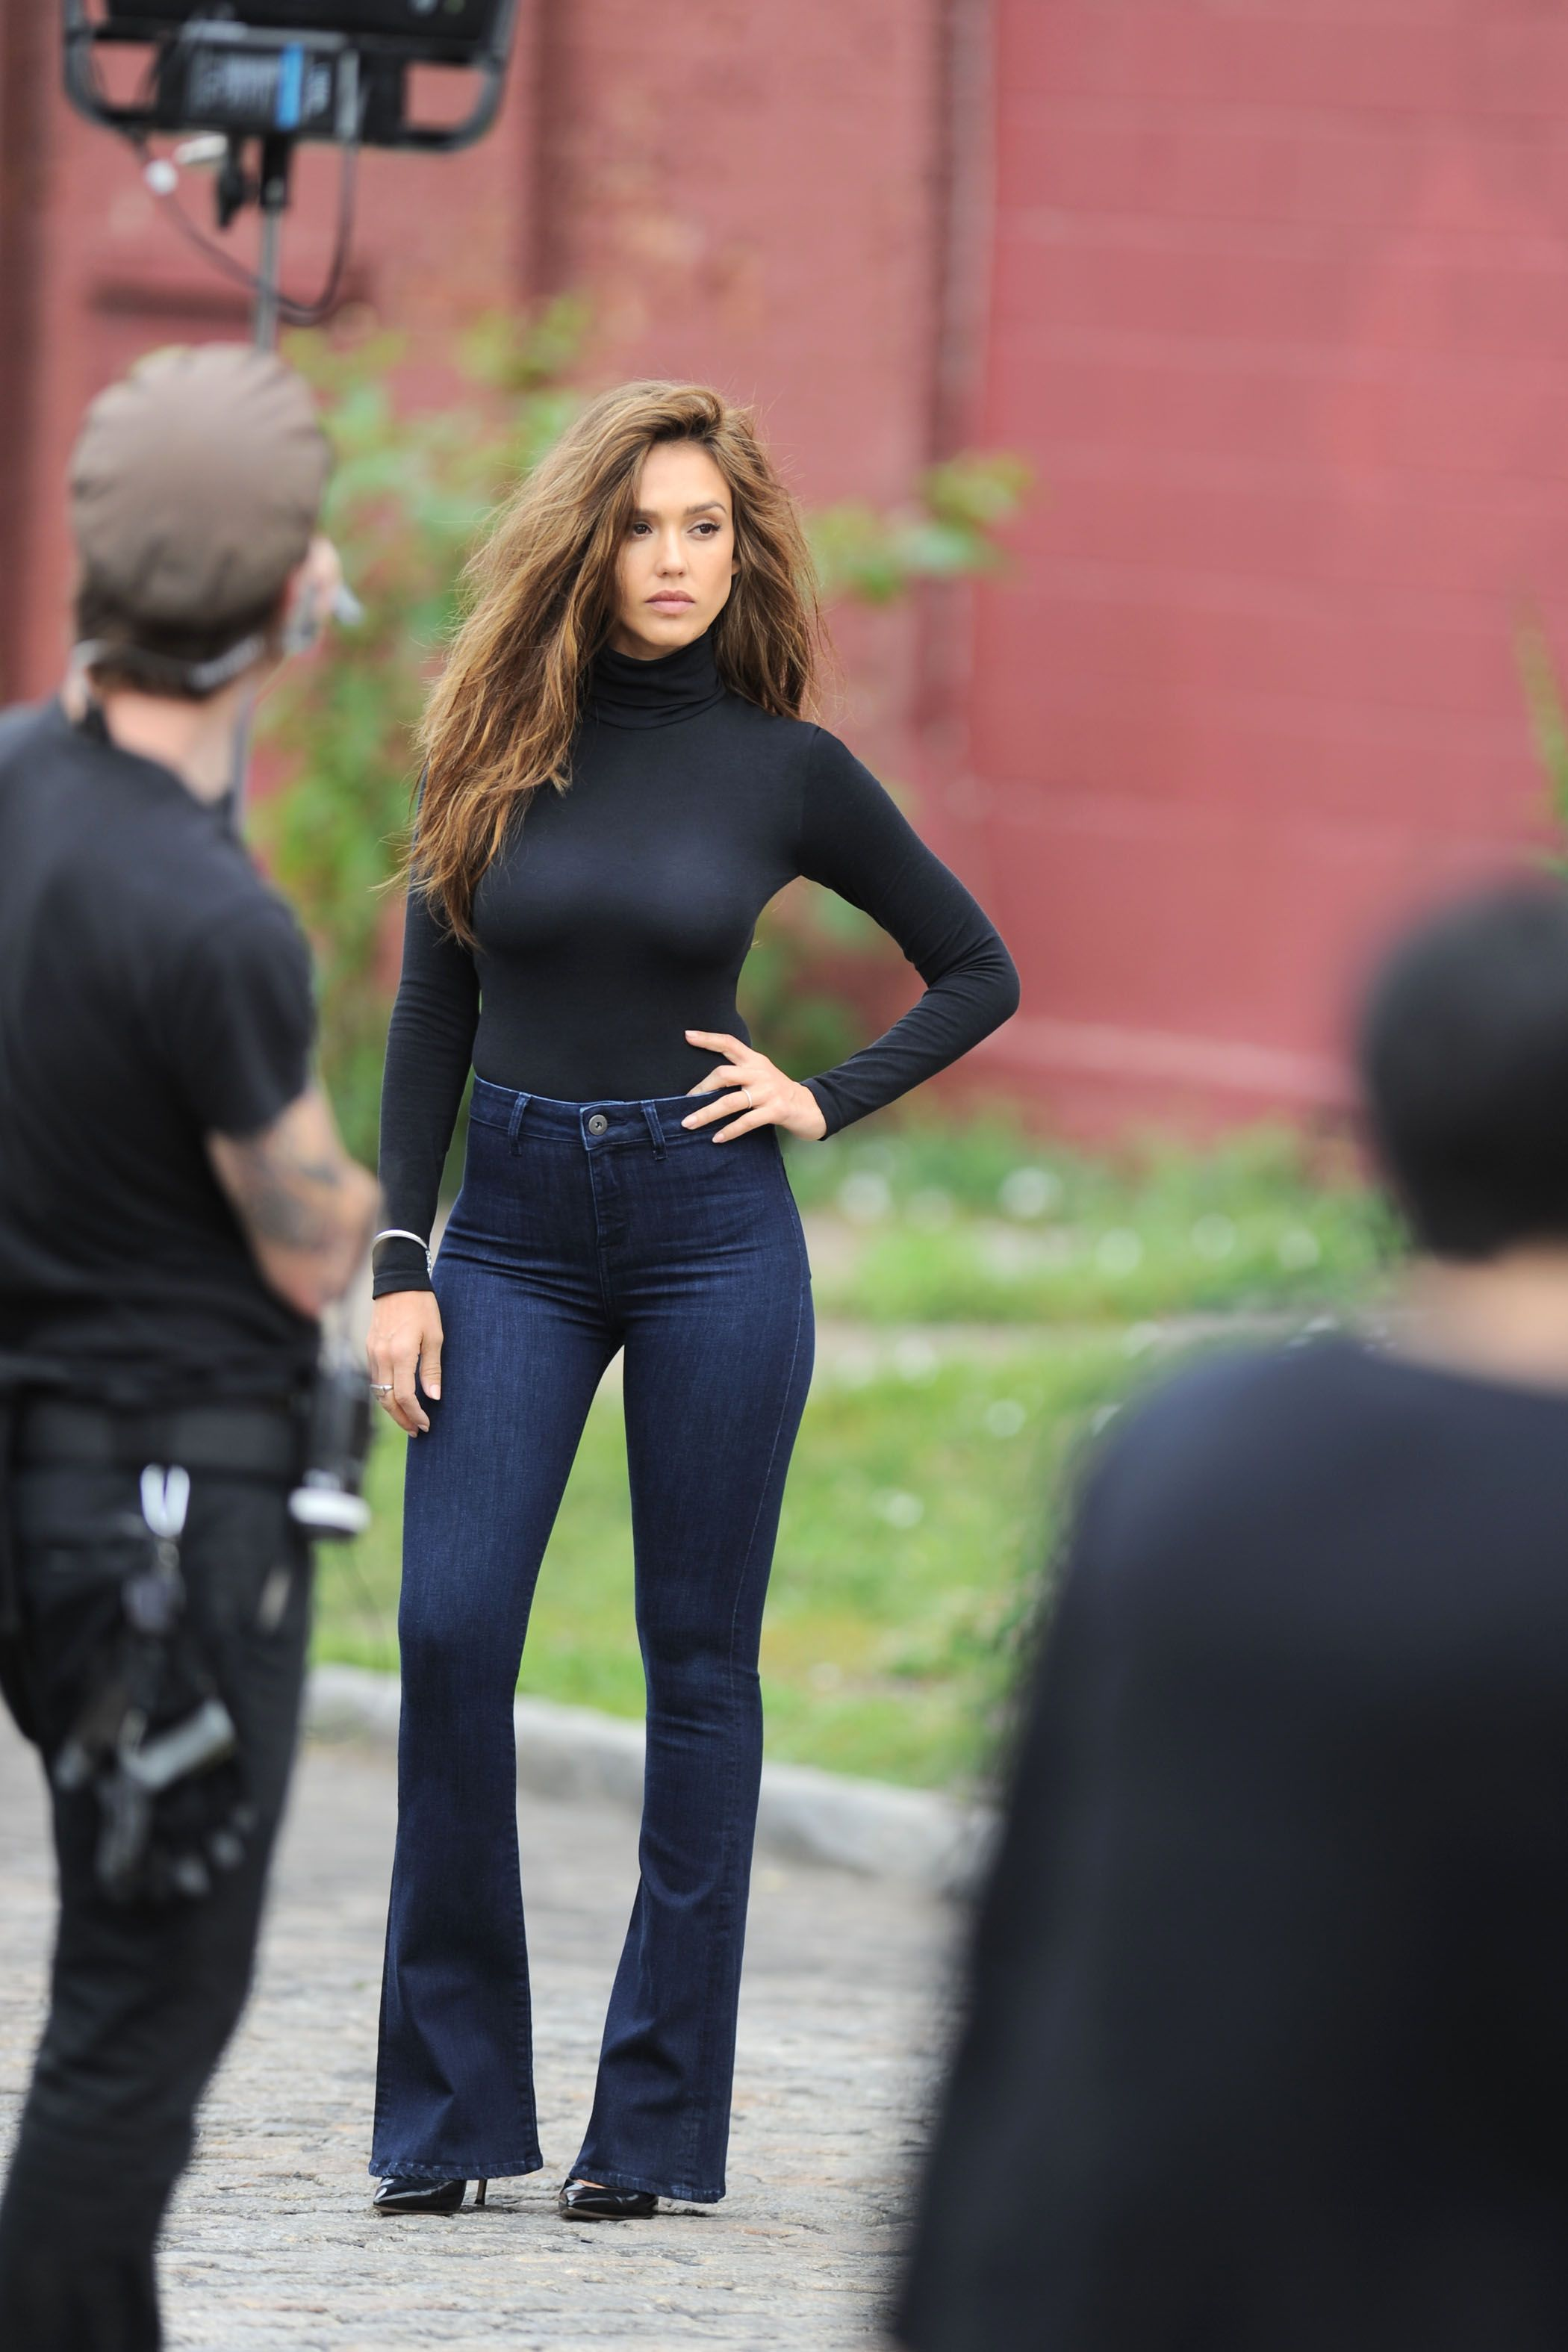 c16ef7021d21 Jessica Alba on set of a photoshoot in NYC 6 19 16